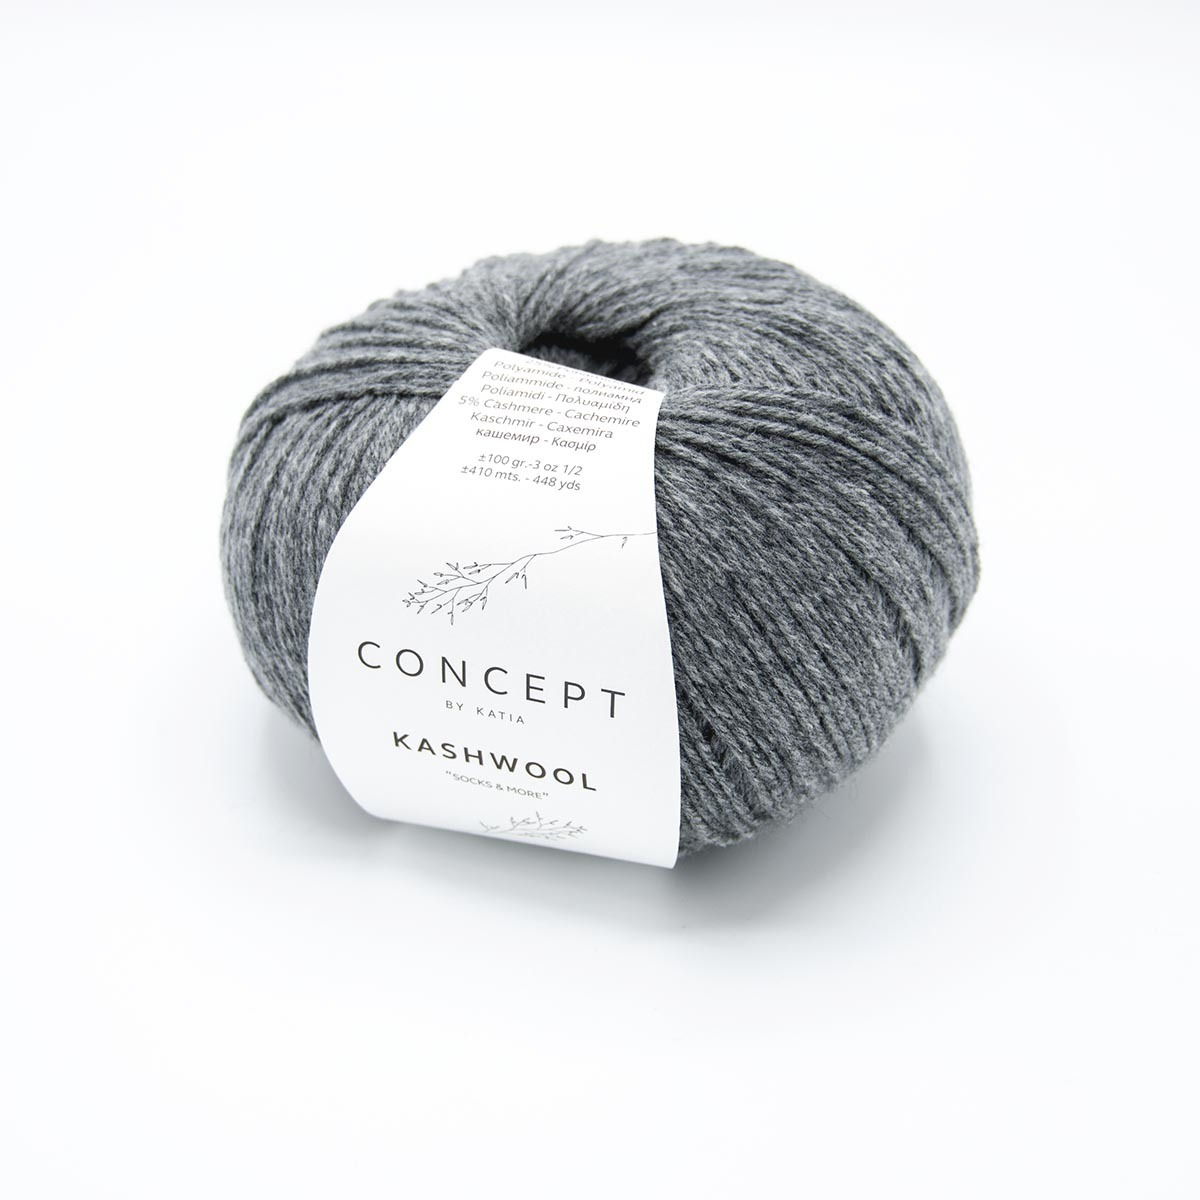 Concept Kashwool 307 Dark grey